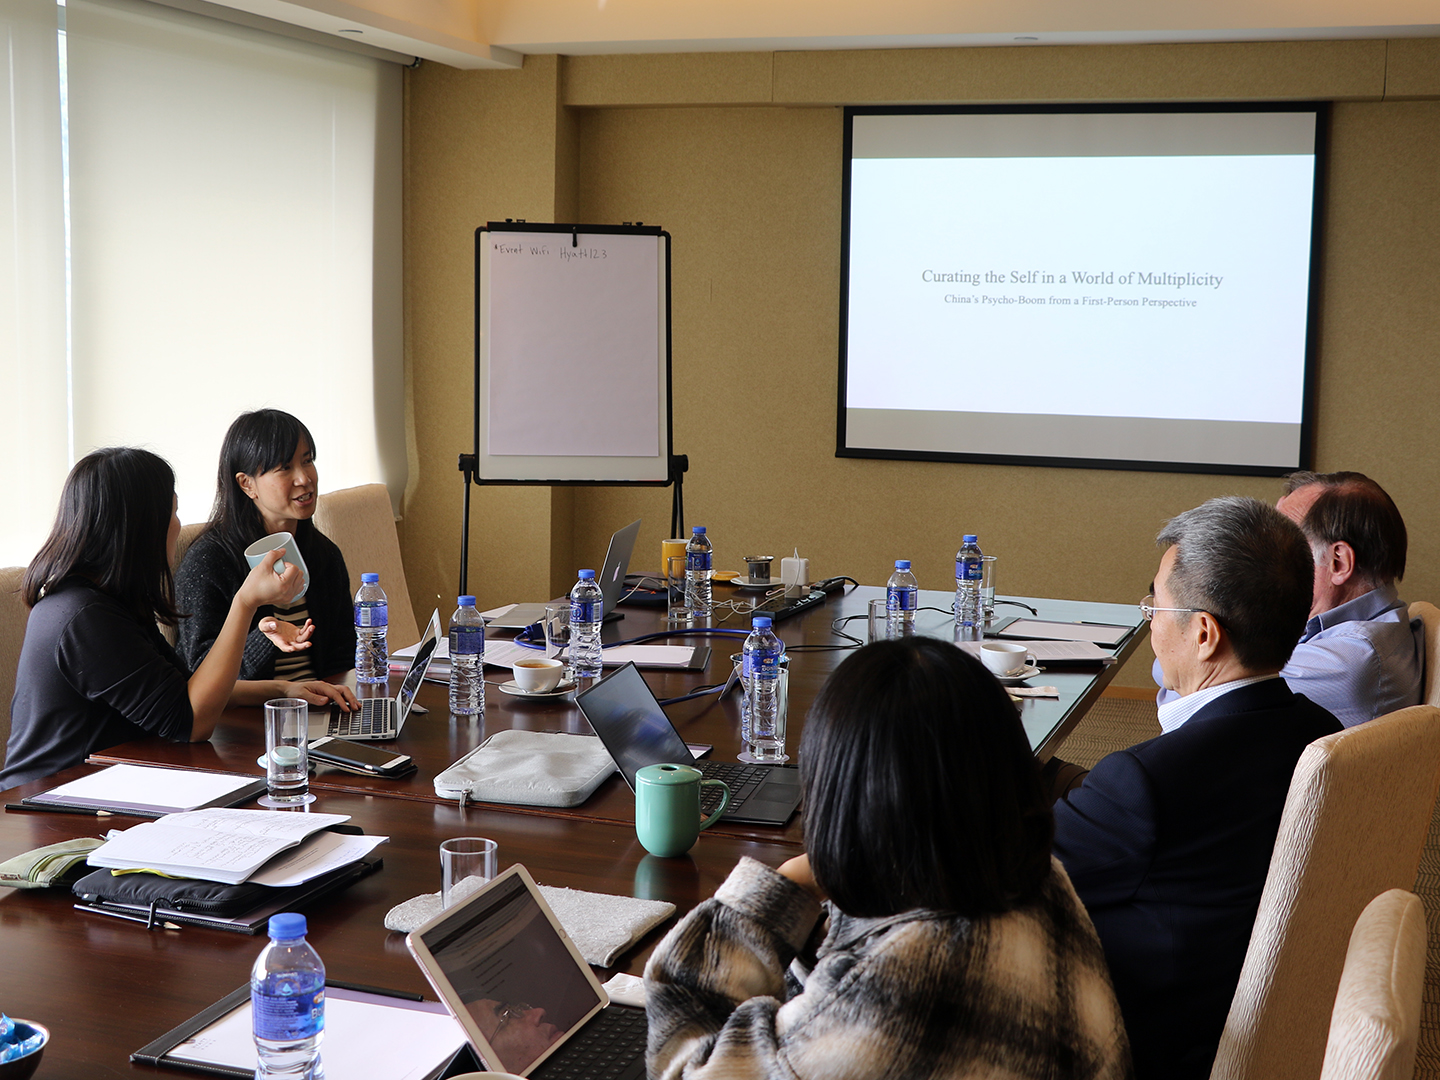 Teresa Kuan introducing her research to the group.